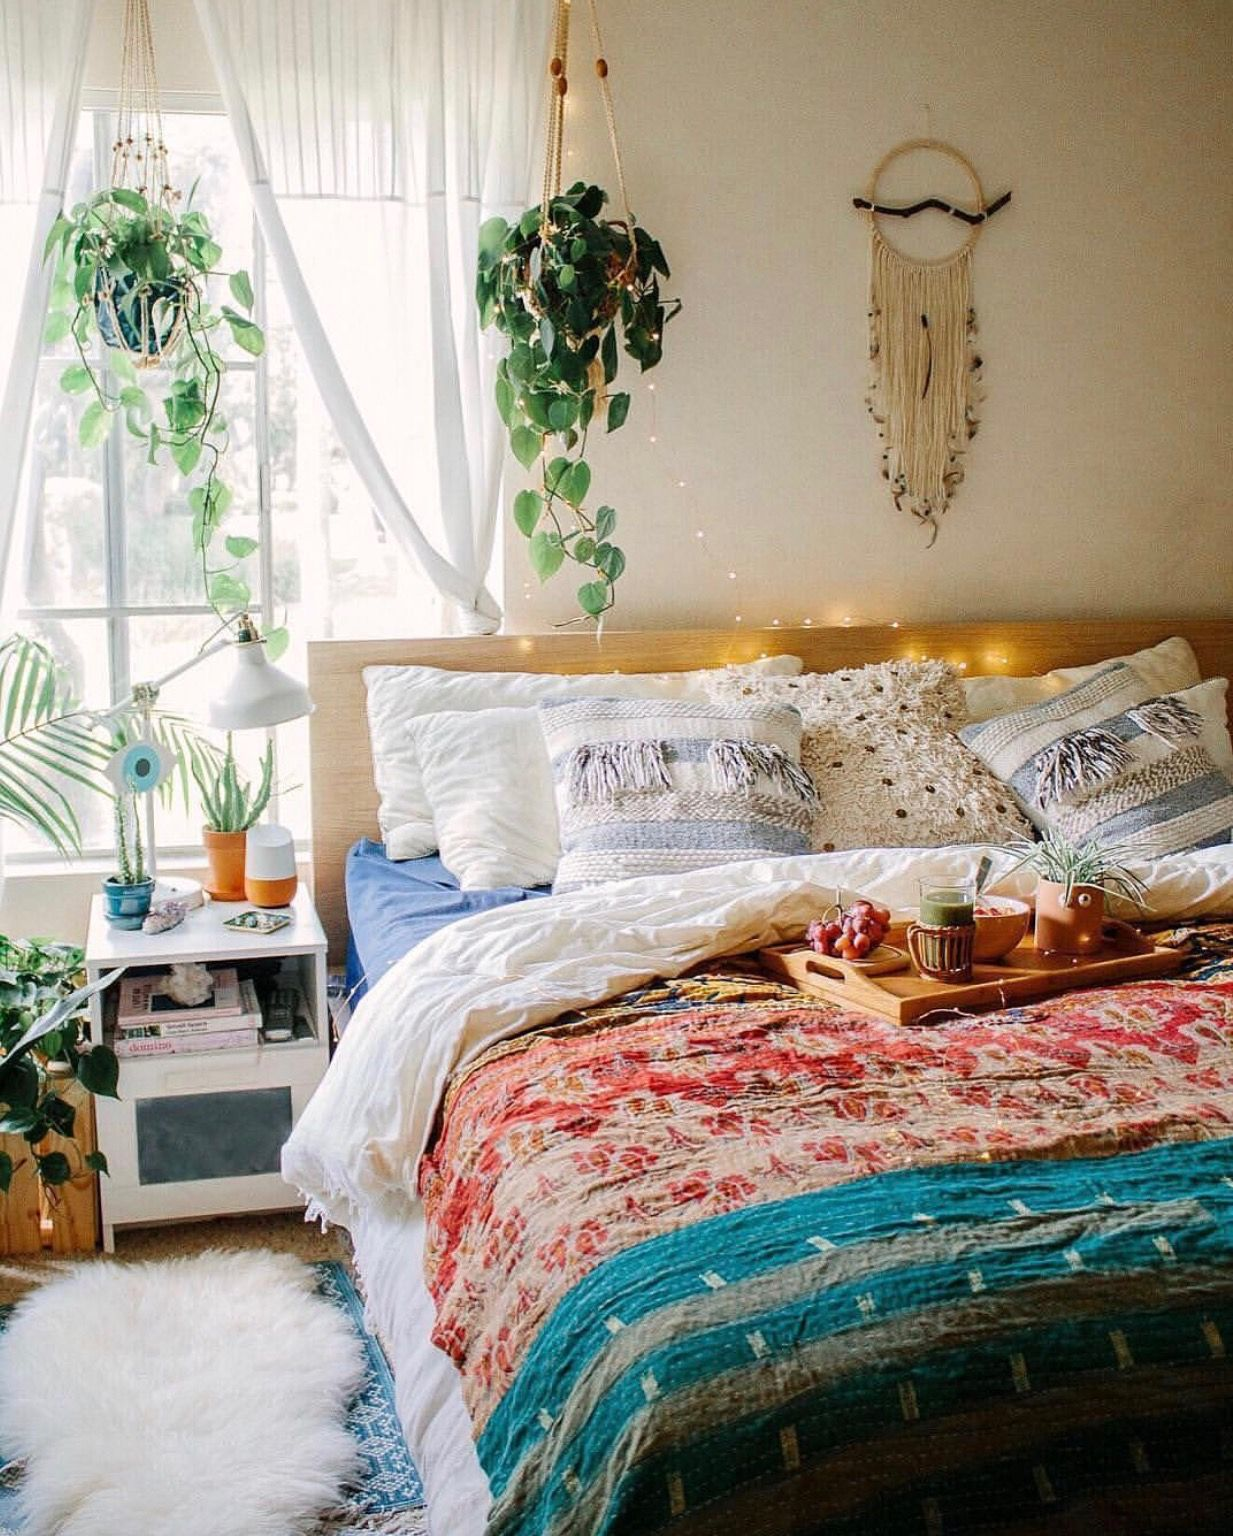 Pin by heidi nichole on interior (With images) | Bedroom ... on Bohemian Bedroom Ideas On A Budget  id=91651